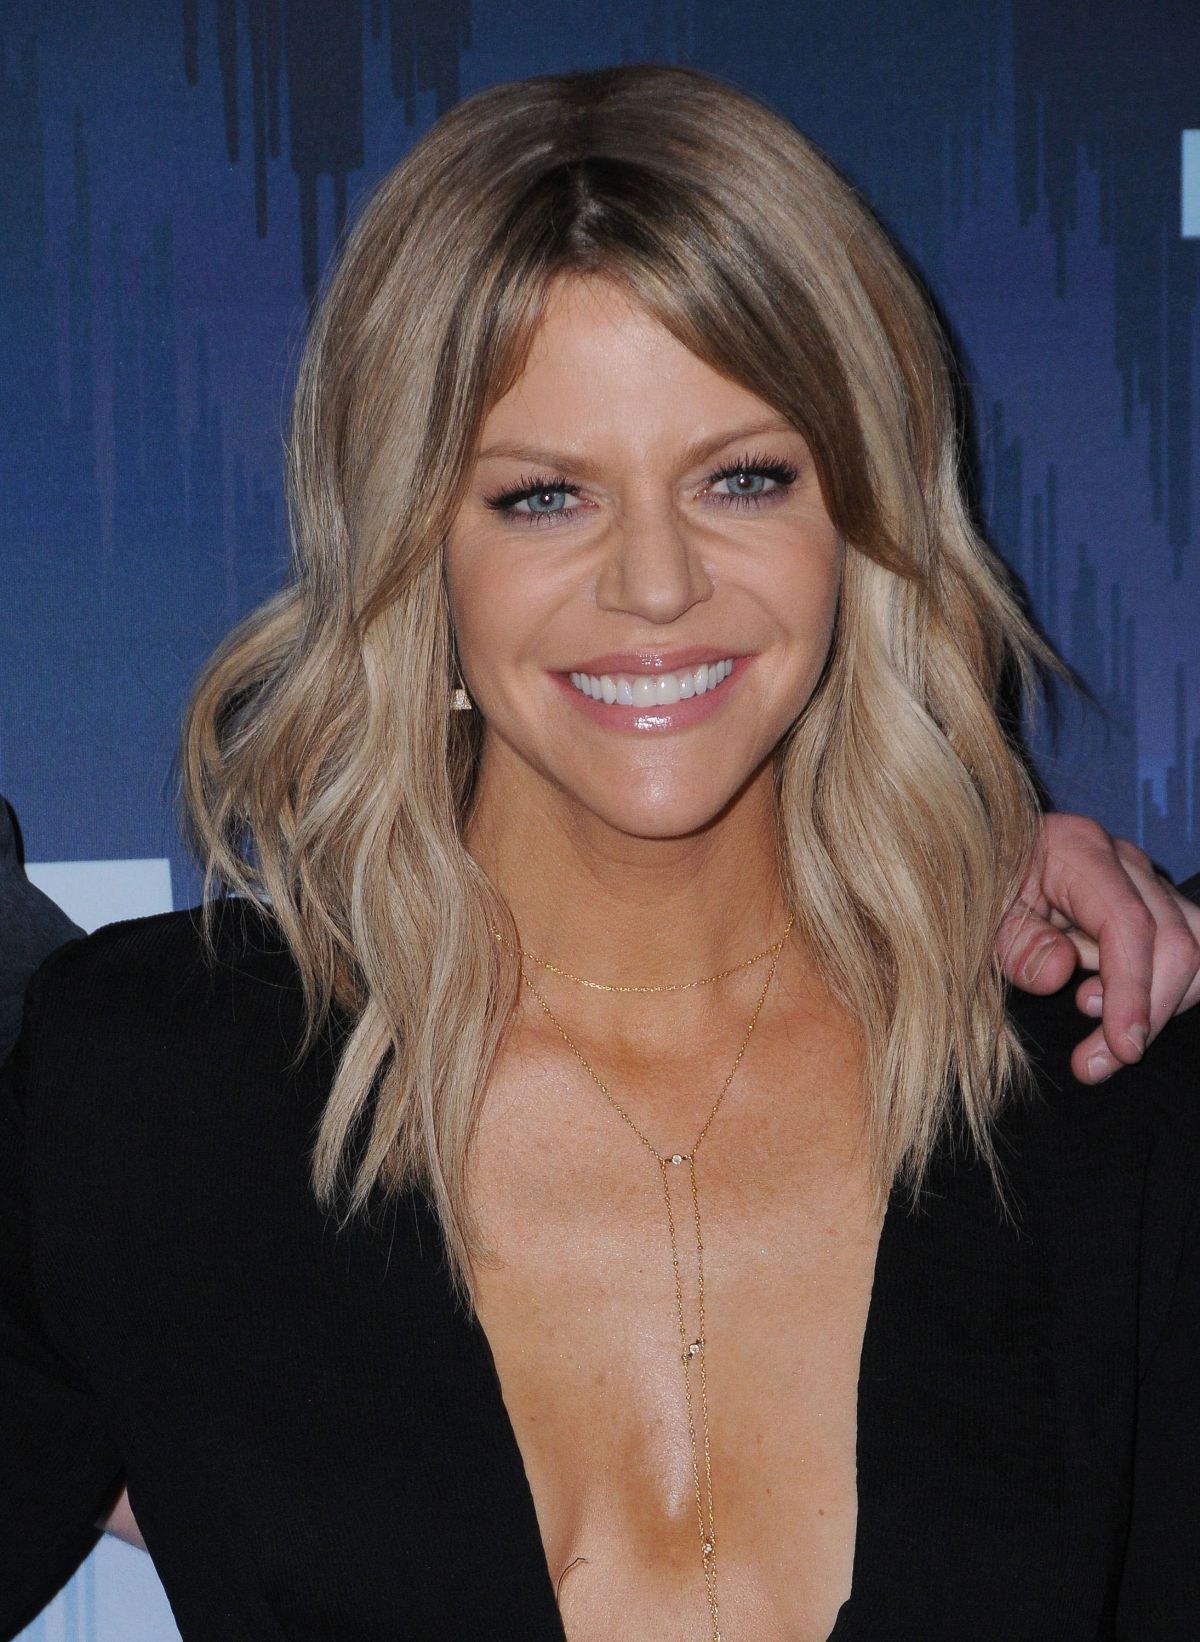 KAITLIN OLSON at Fox All-star Party at 2017 Winter TCA Tour in Pasadena 01/11/2017